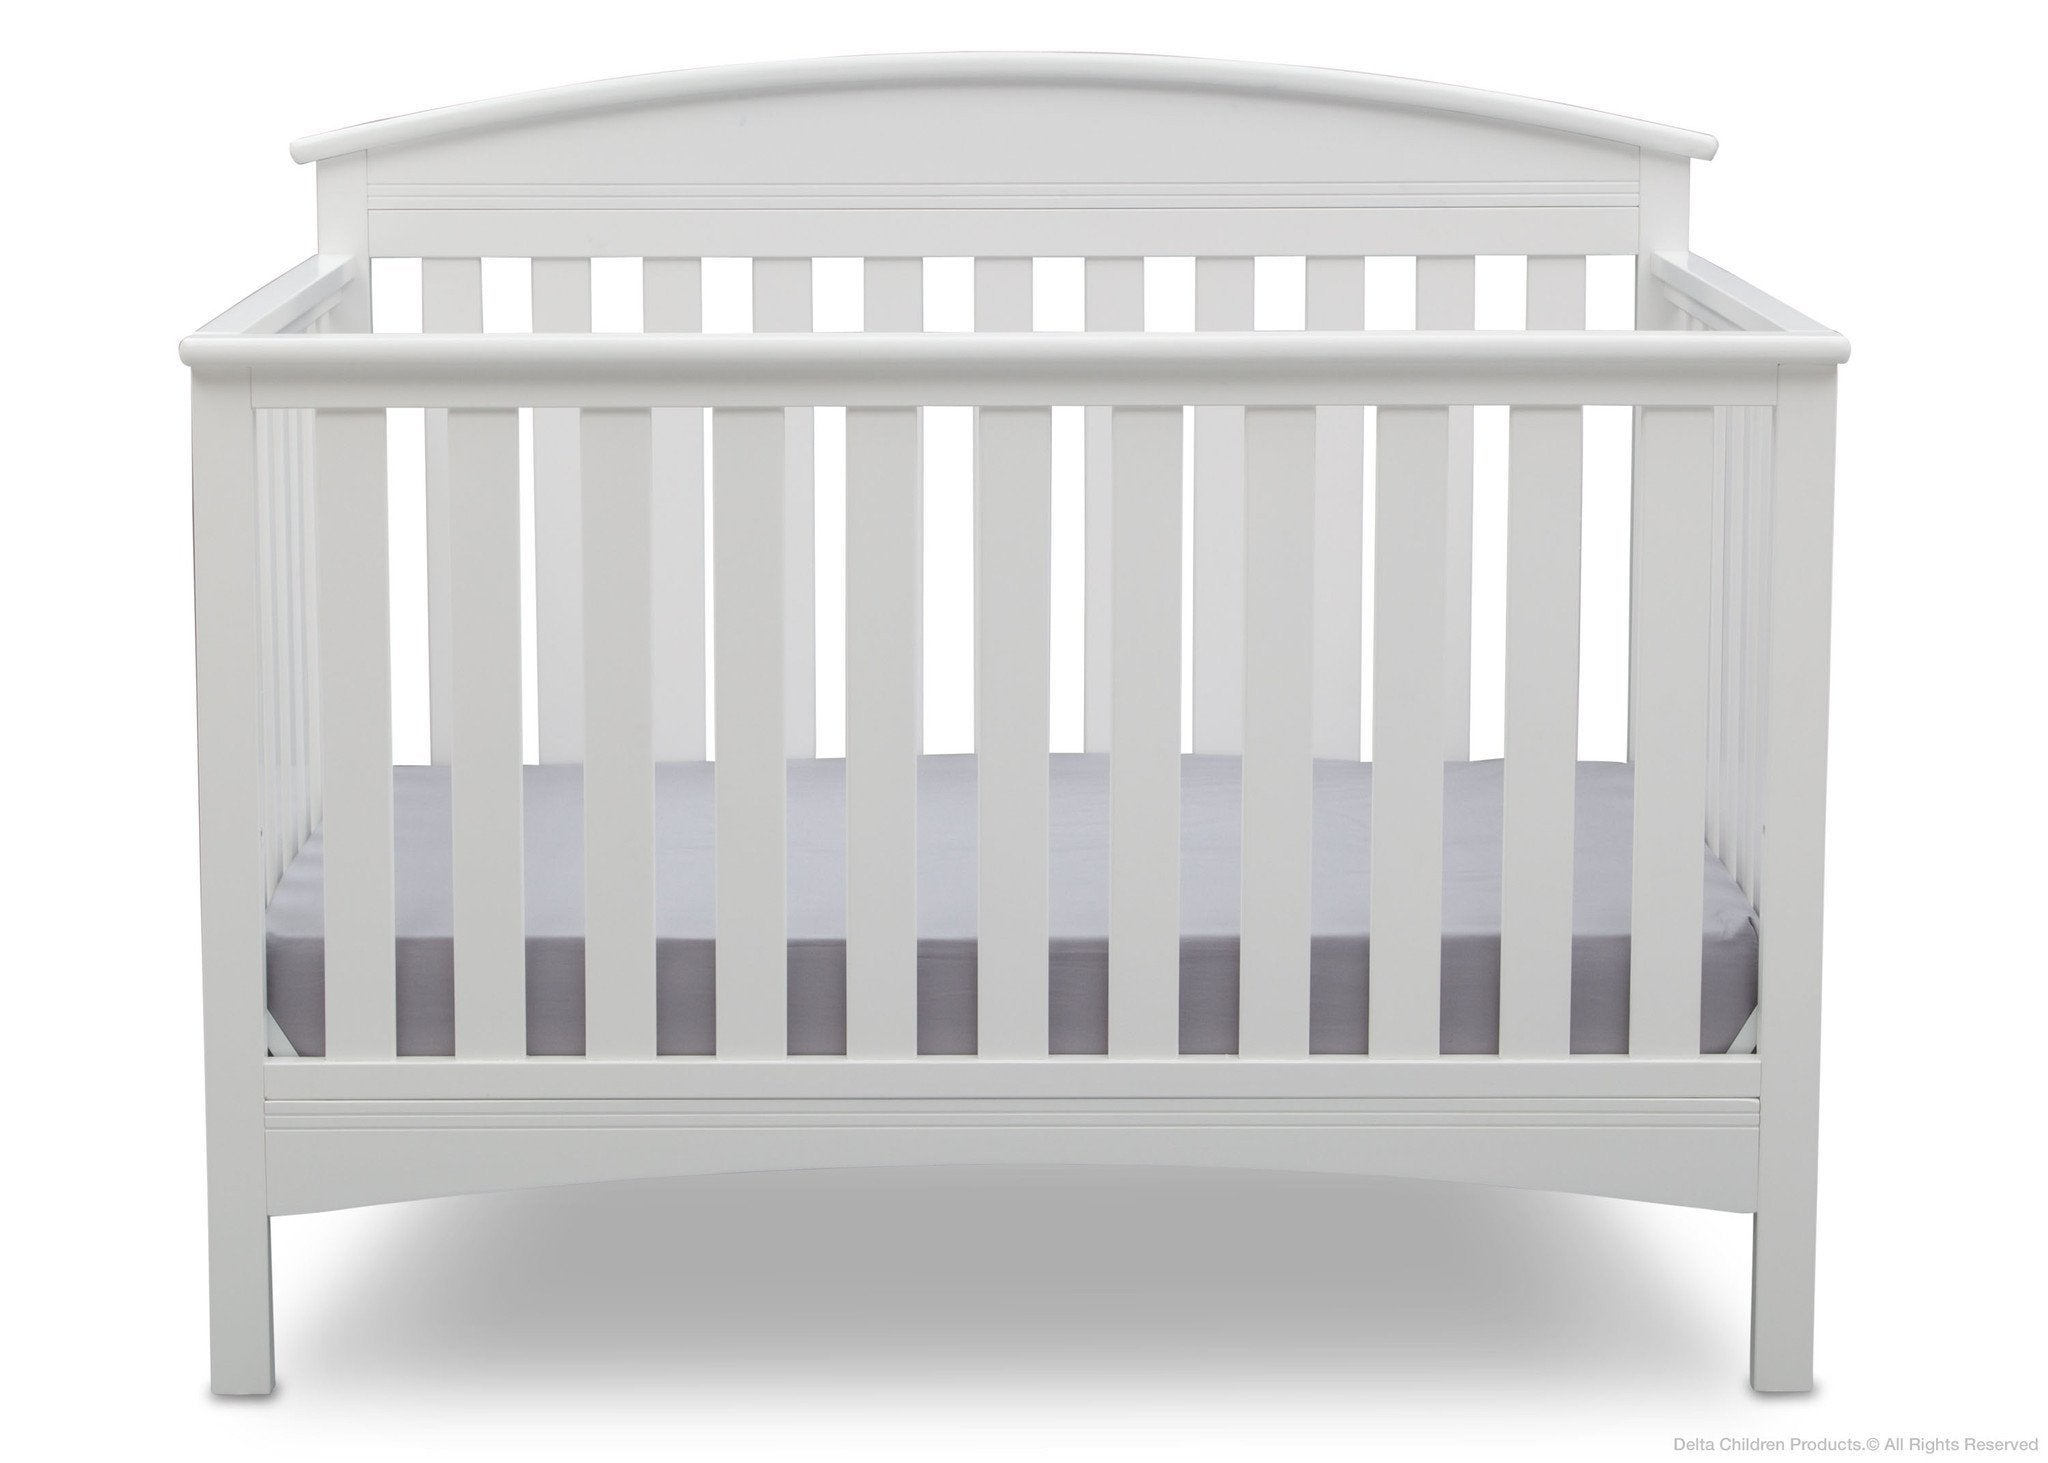 Delta Children Bianca (130) Abby 4-in-1 Crib Front View b2b